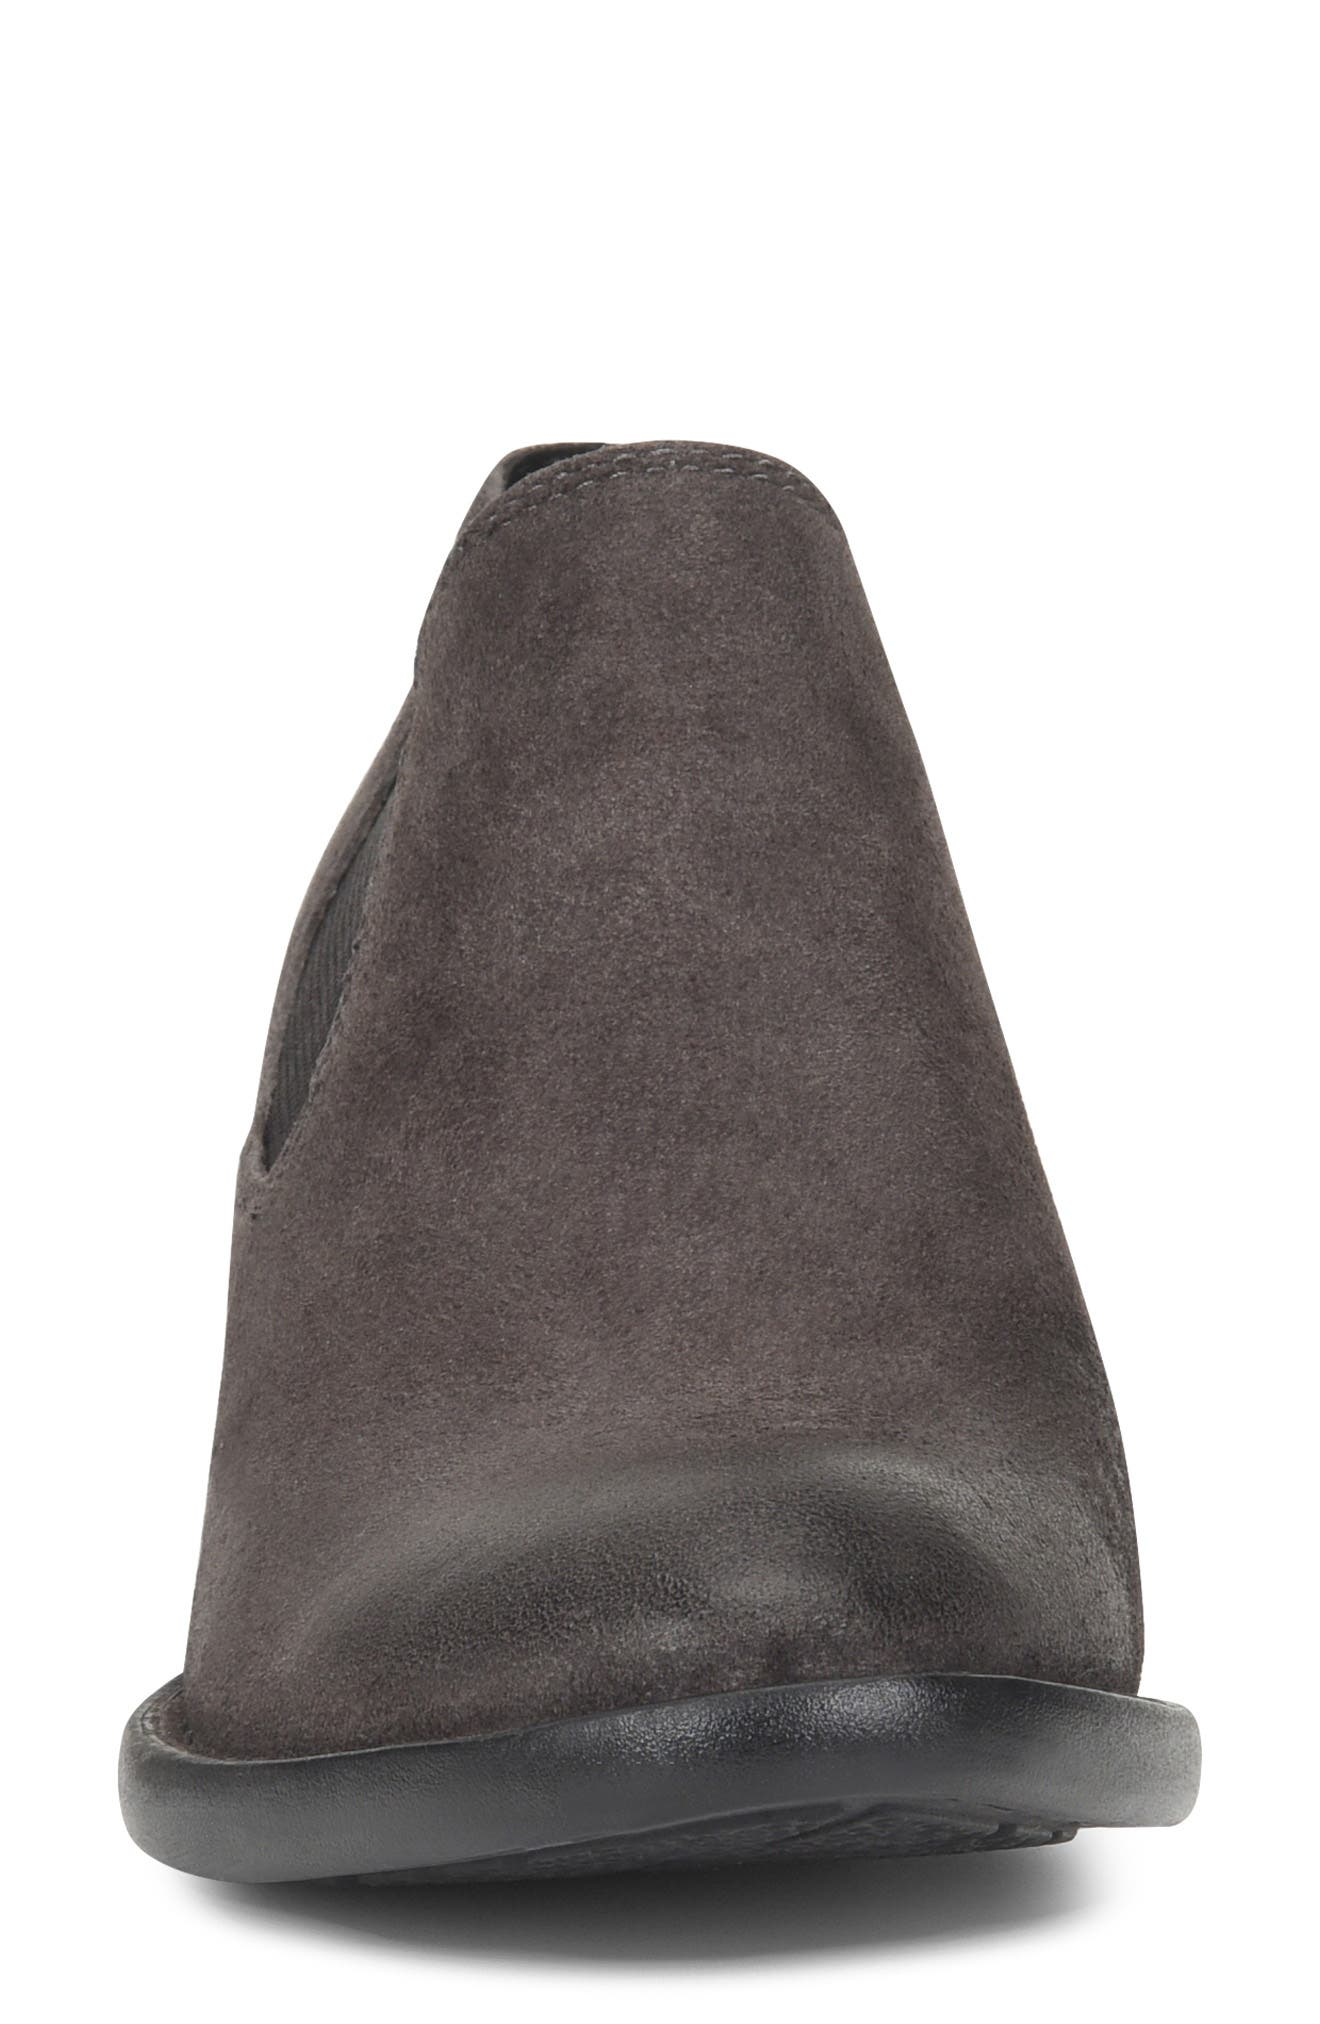 Dallia Bootie,                             Alternate thumbnail 4, color,                             DARK GREY DISTRESSED LEATHER